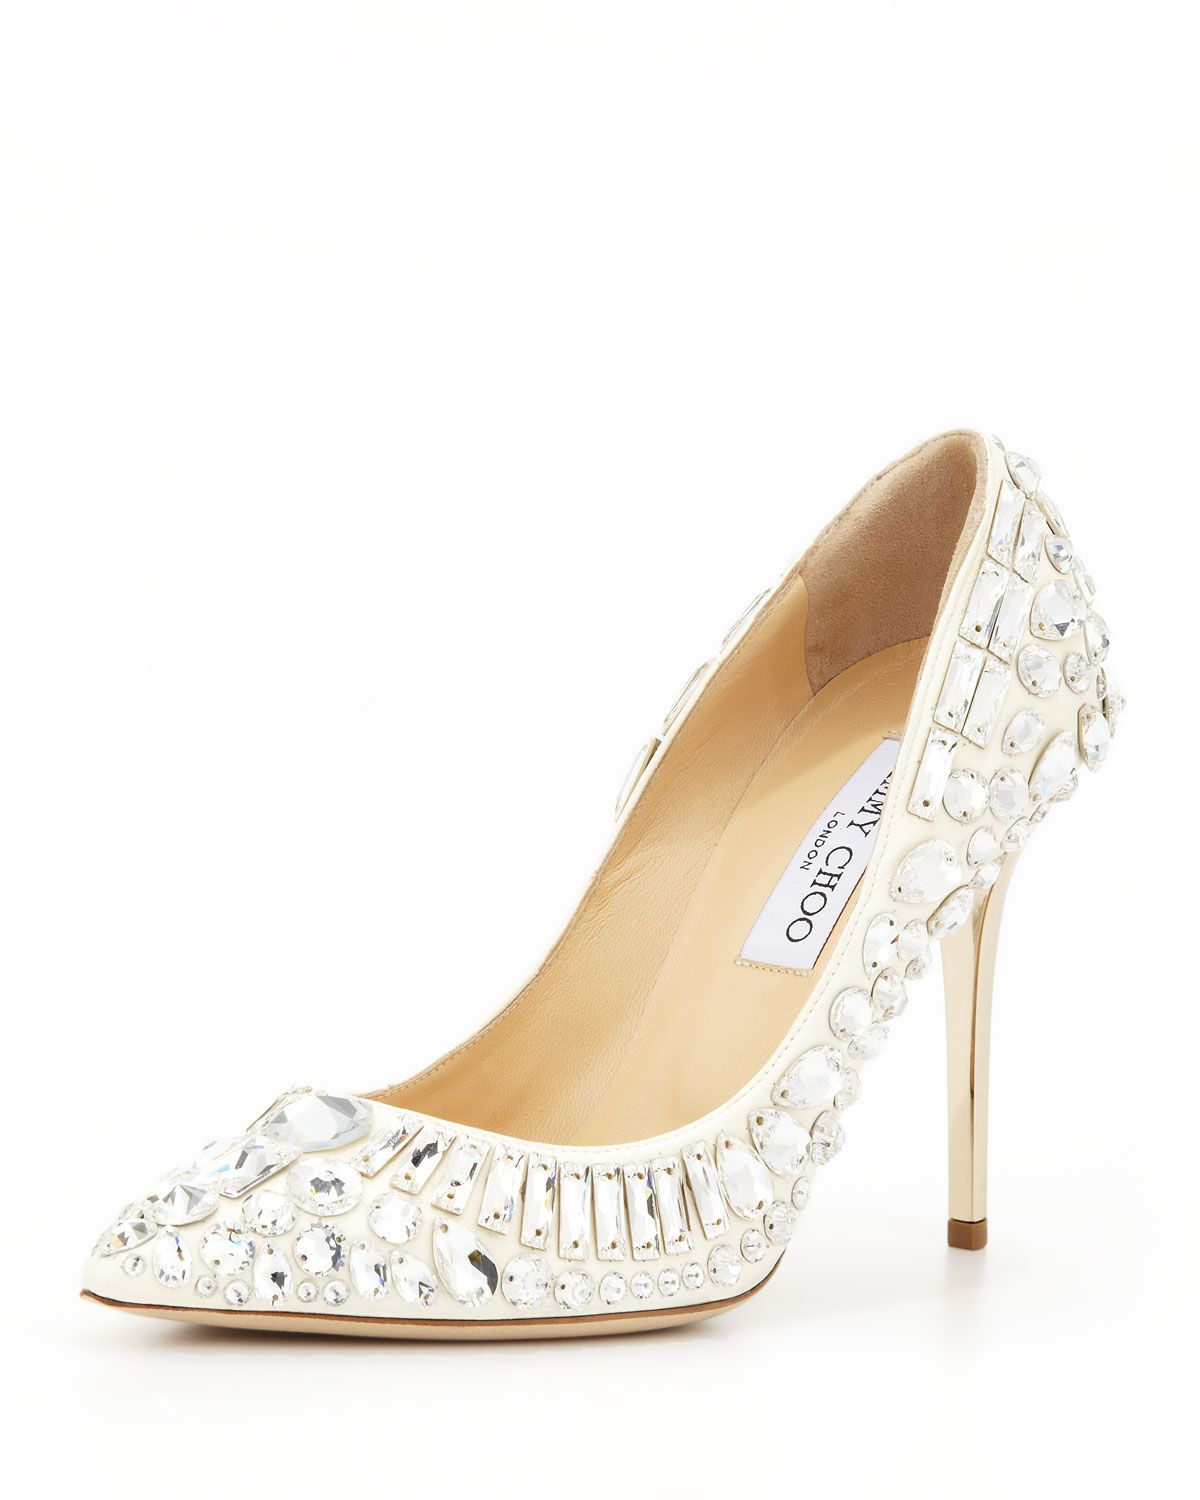 c537c8321e8a2 Trina Pointy-Toe Jewel Pump White in 2019 | Shoes, Gems and Fashion ...